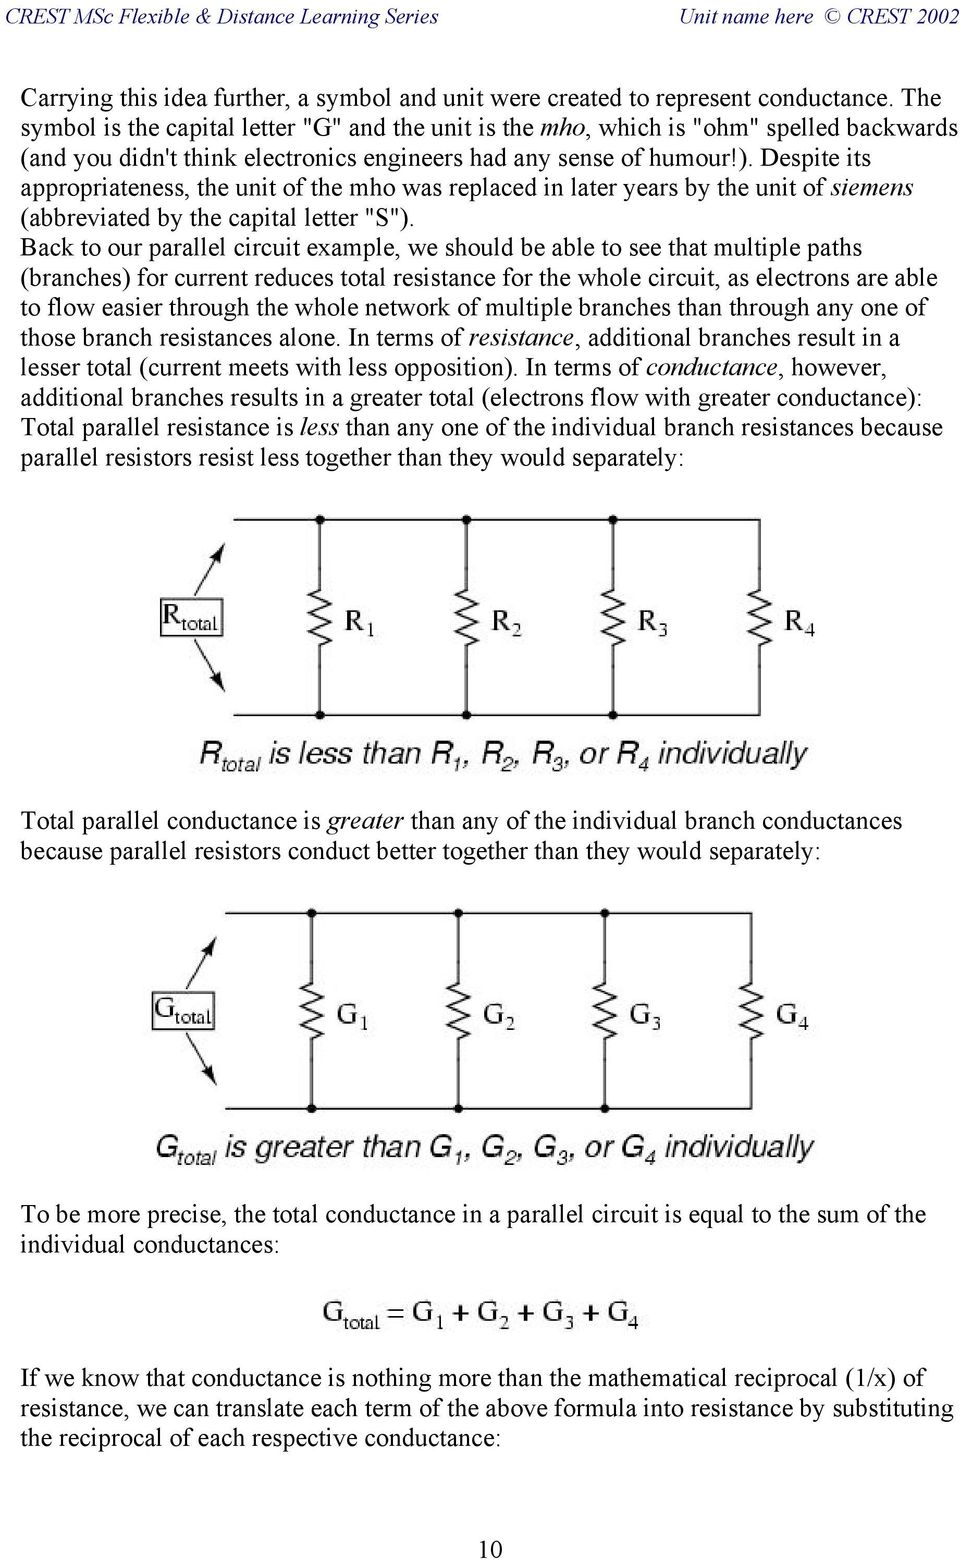 Fb Dc3 Electric Circuits Series And Parallel Pdf The Combined Resistance Of Resistors In Is Sum All Despite Its Appropriateness Unit Mho Was Replaced Later Years By 11 Solving Above Equation For Total